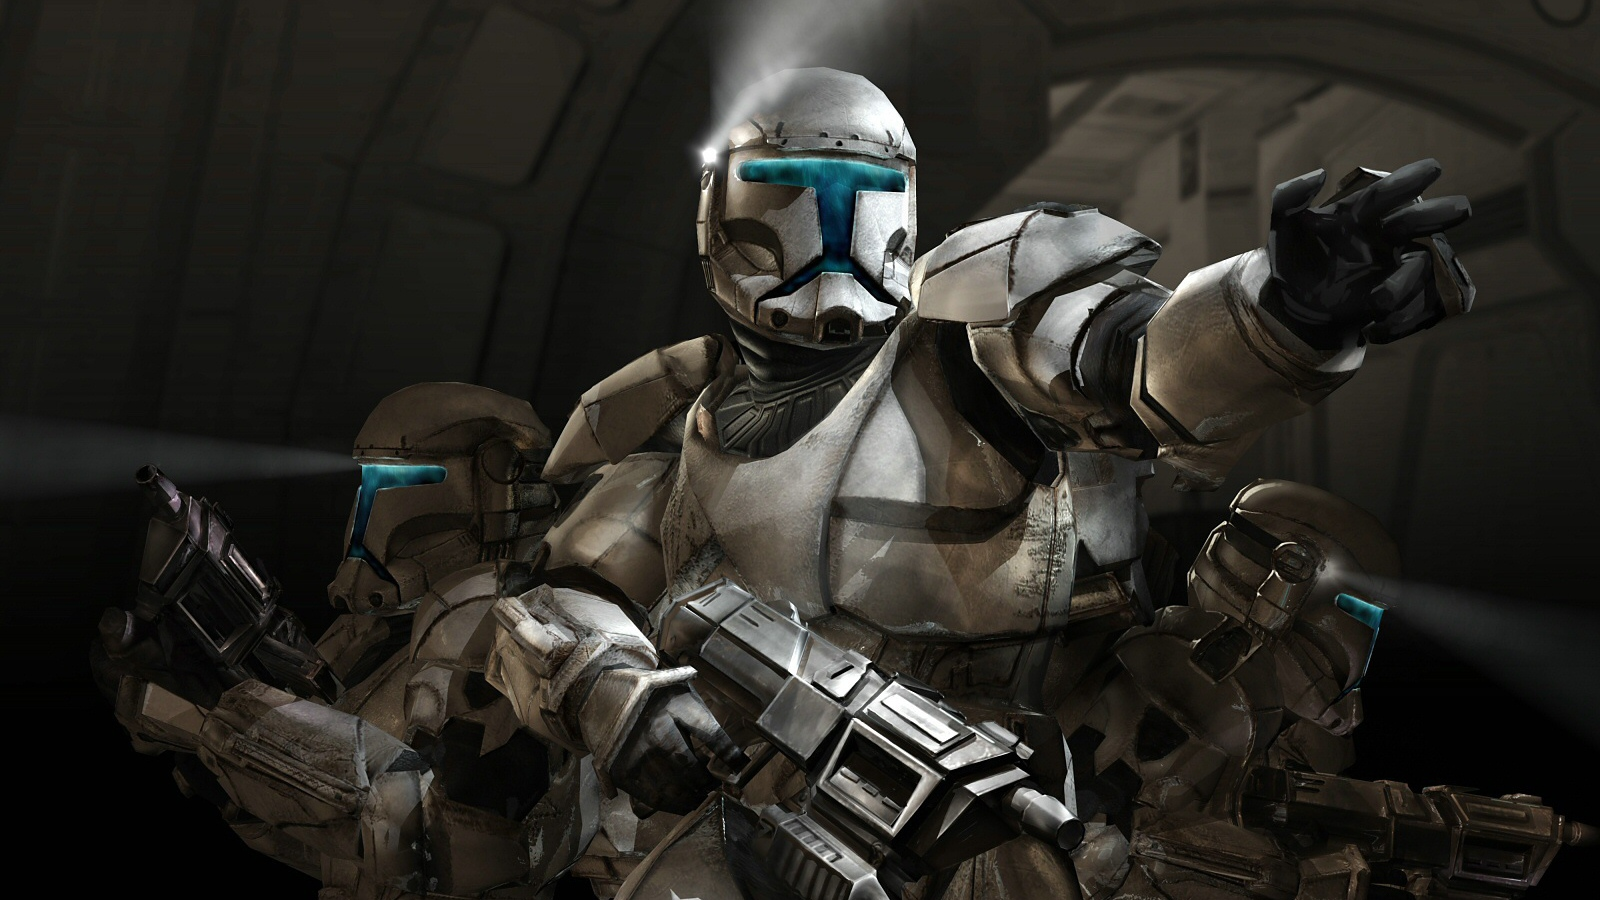 Free Download Star Wars The Clone Wars The Troopers Desktop Wallpapers 1600x900 1600x900 For Your Desktop Mobile Tablet Explore 43 Star Wars Desktop Wallpaper 1600x900 Star Wars Background Wallpaper